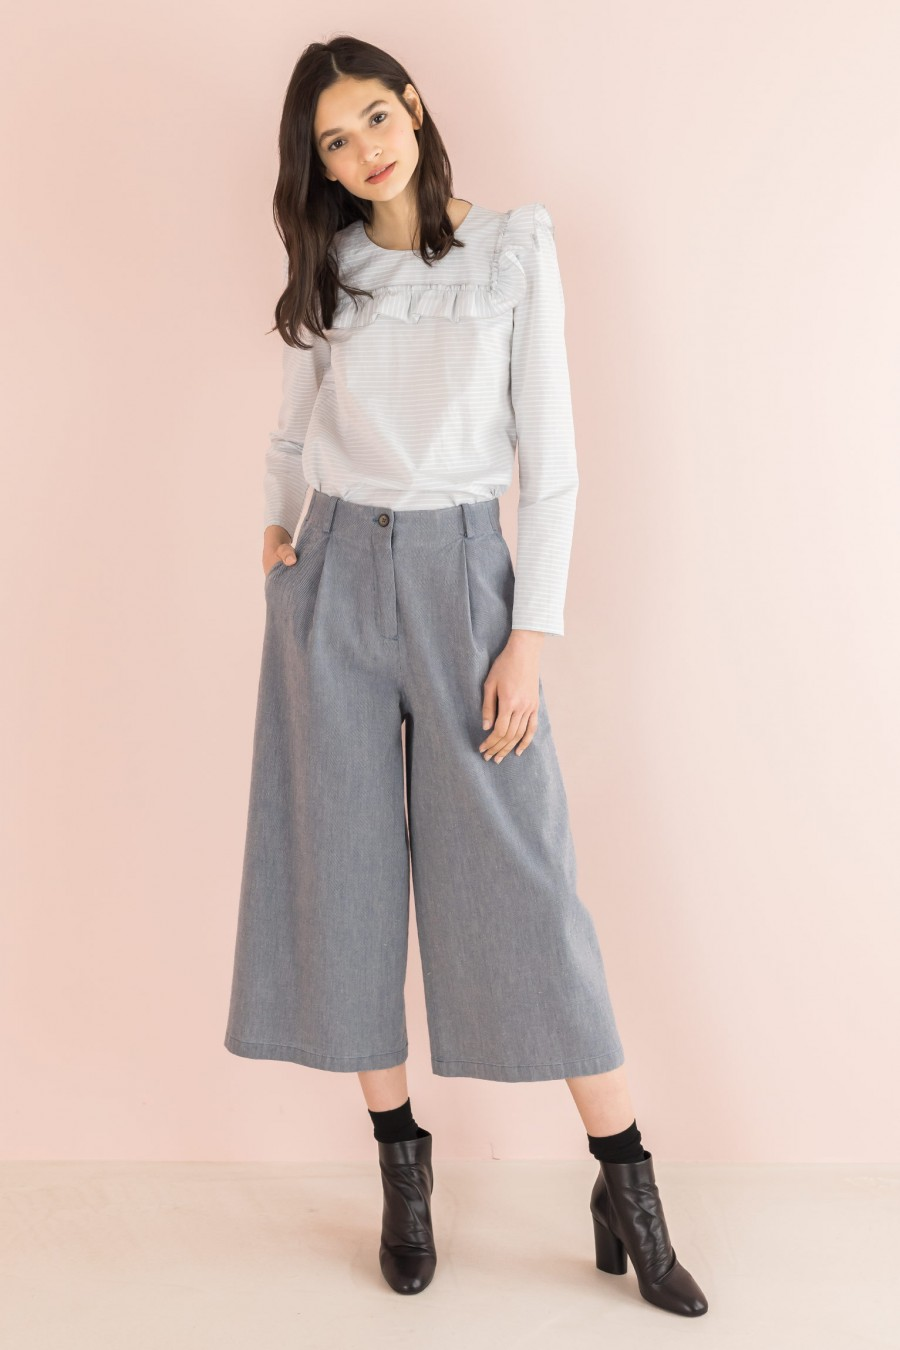 culottes trousers in cotton and linen